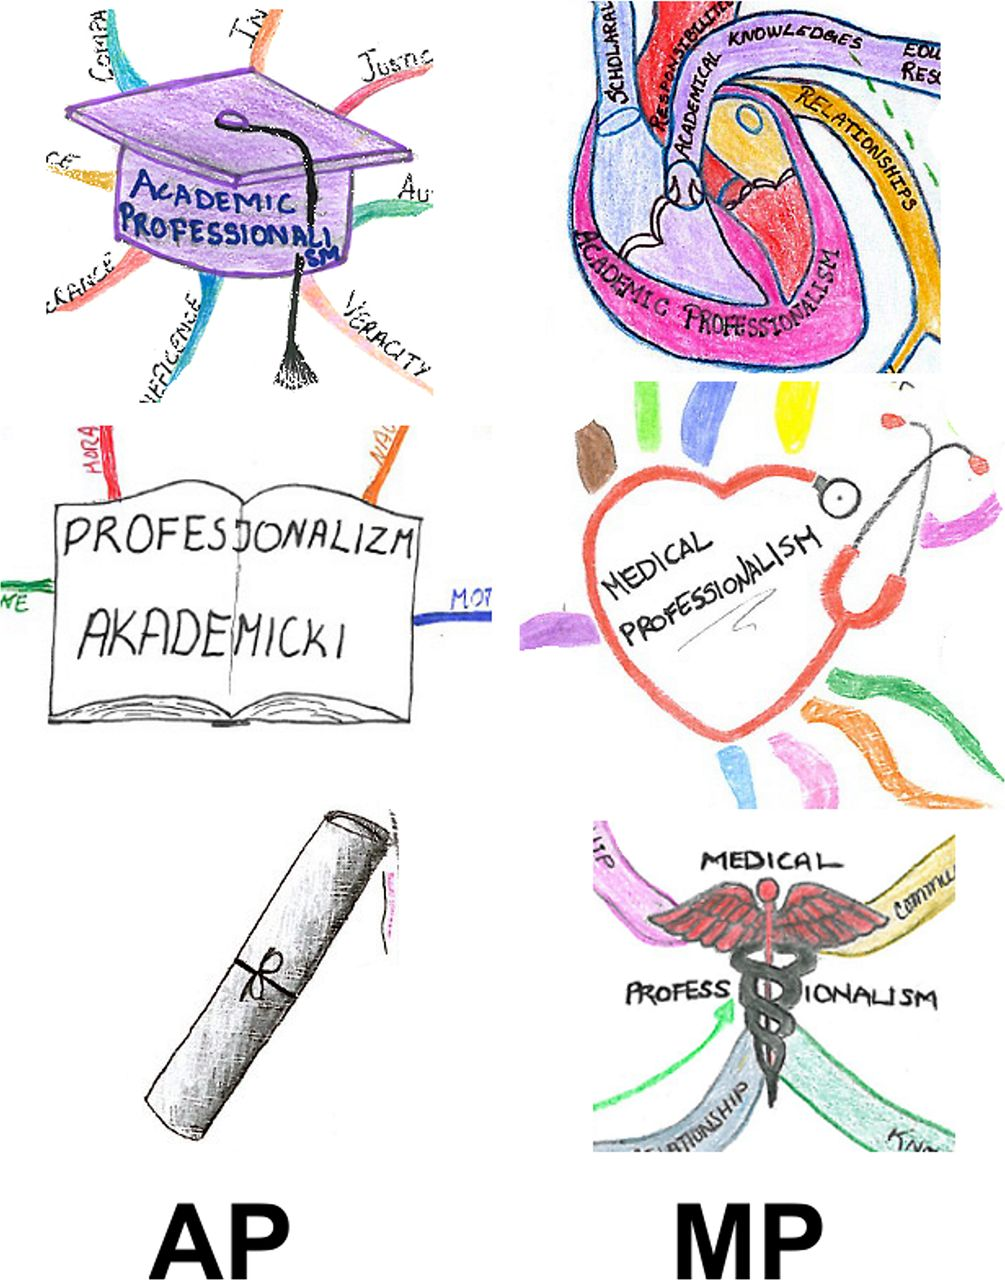 preclinical medical students understandings of academic and medical